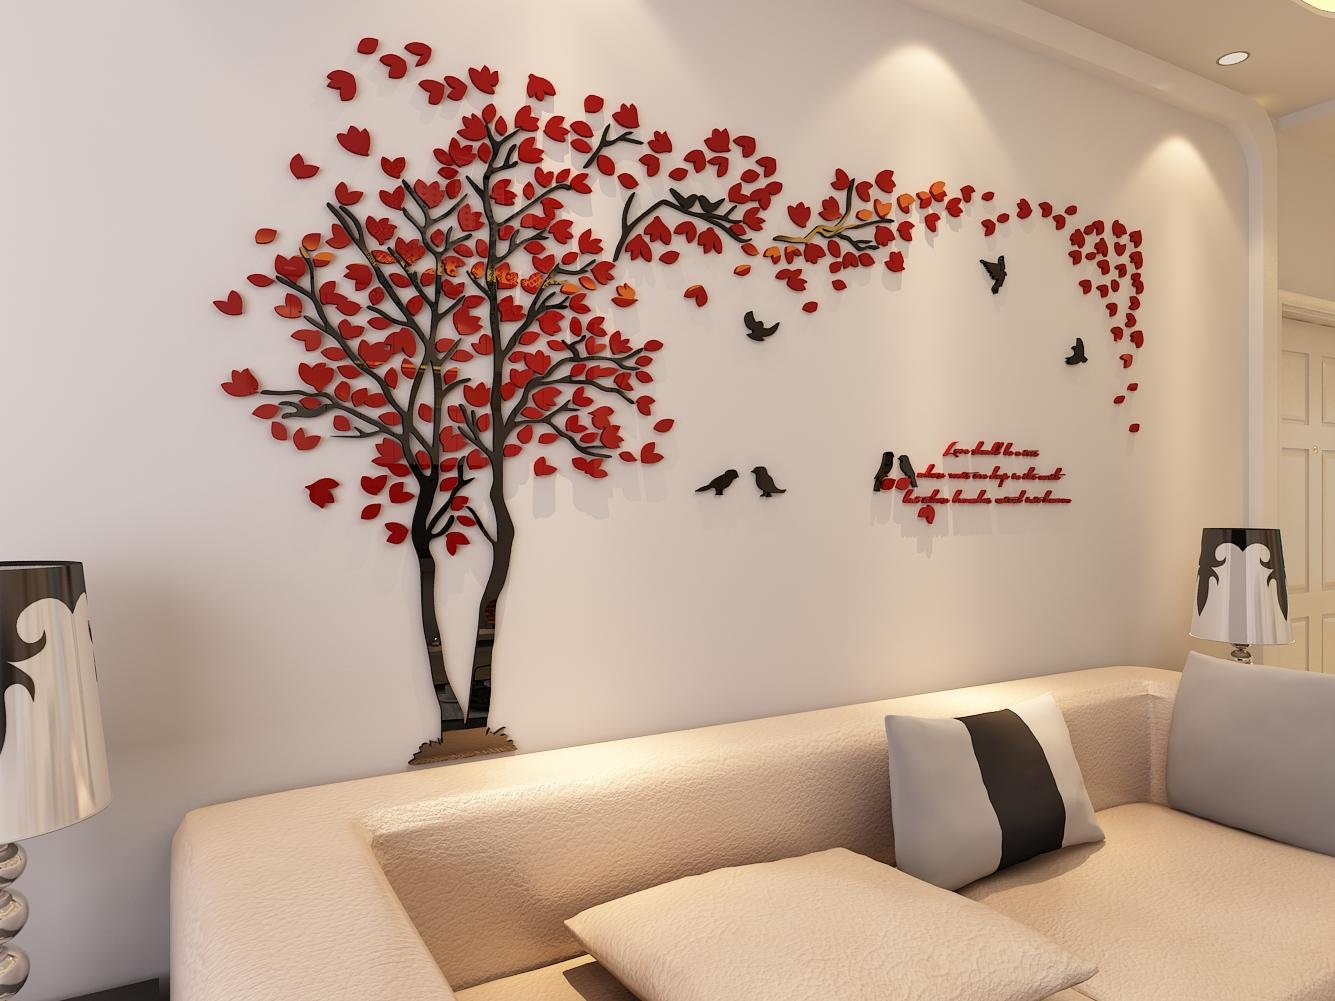 Tree Design Wallpaper Living Room Amazoncom 3d Couple Tree Wall Murals For Living Room Bedroom